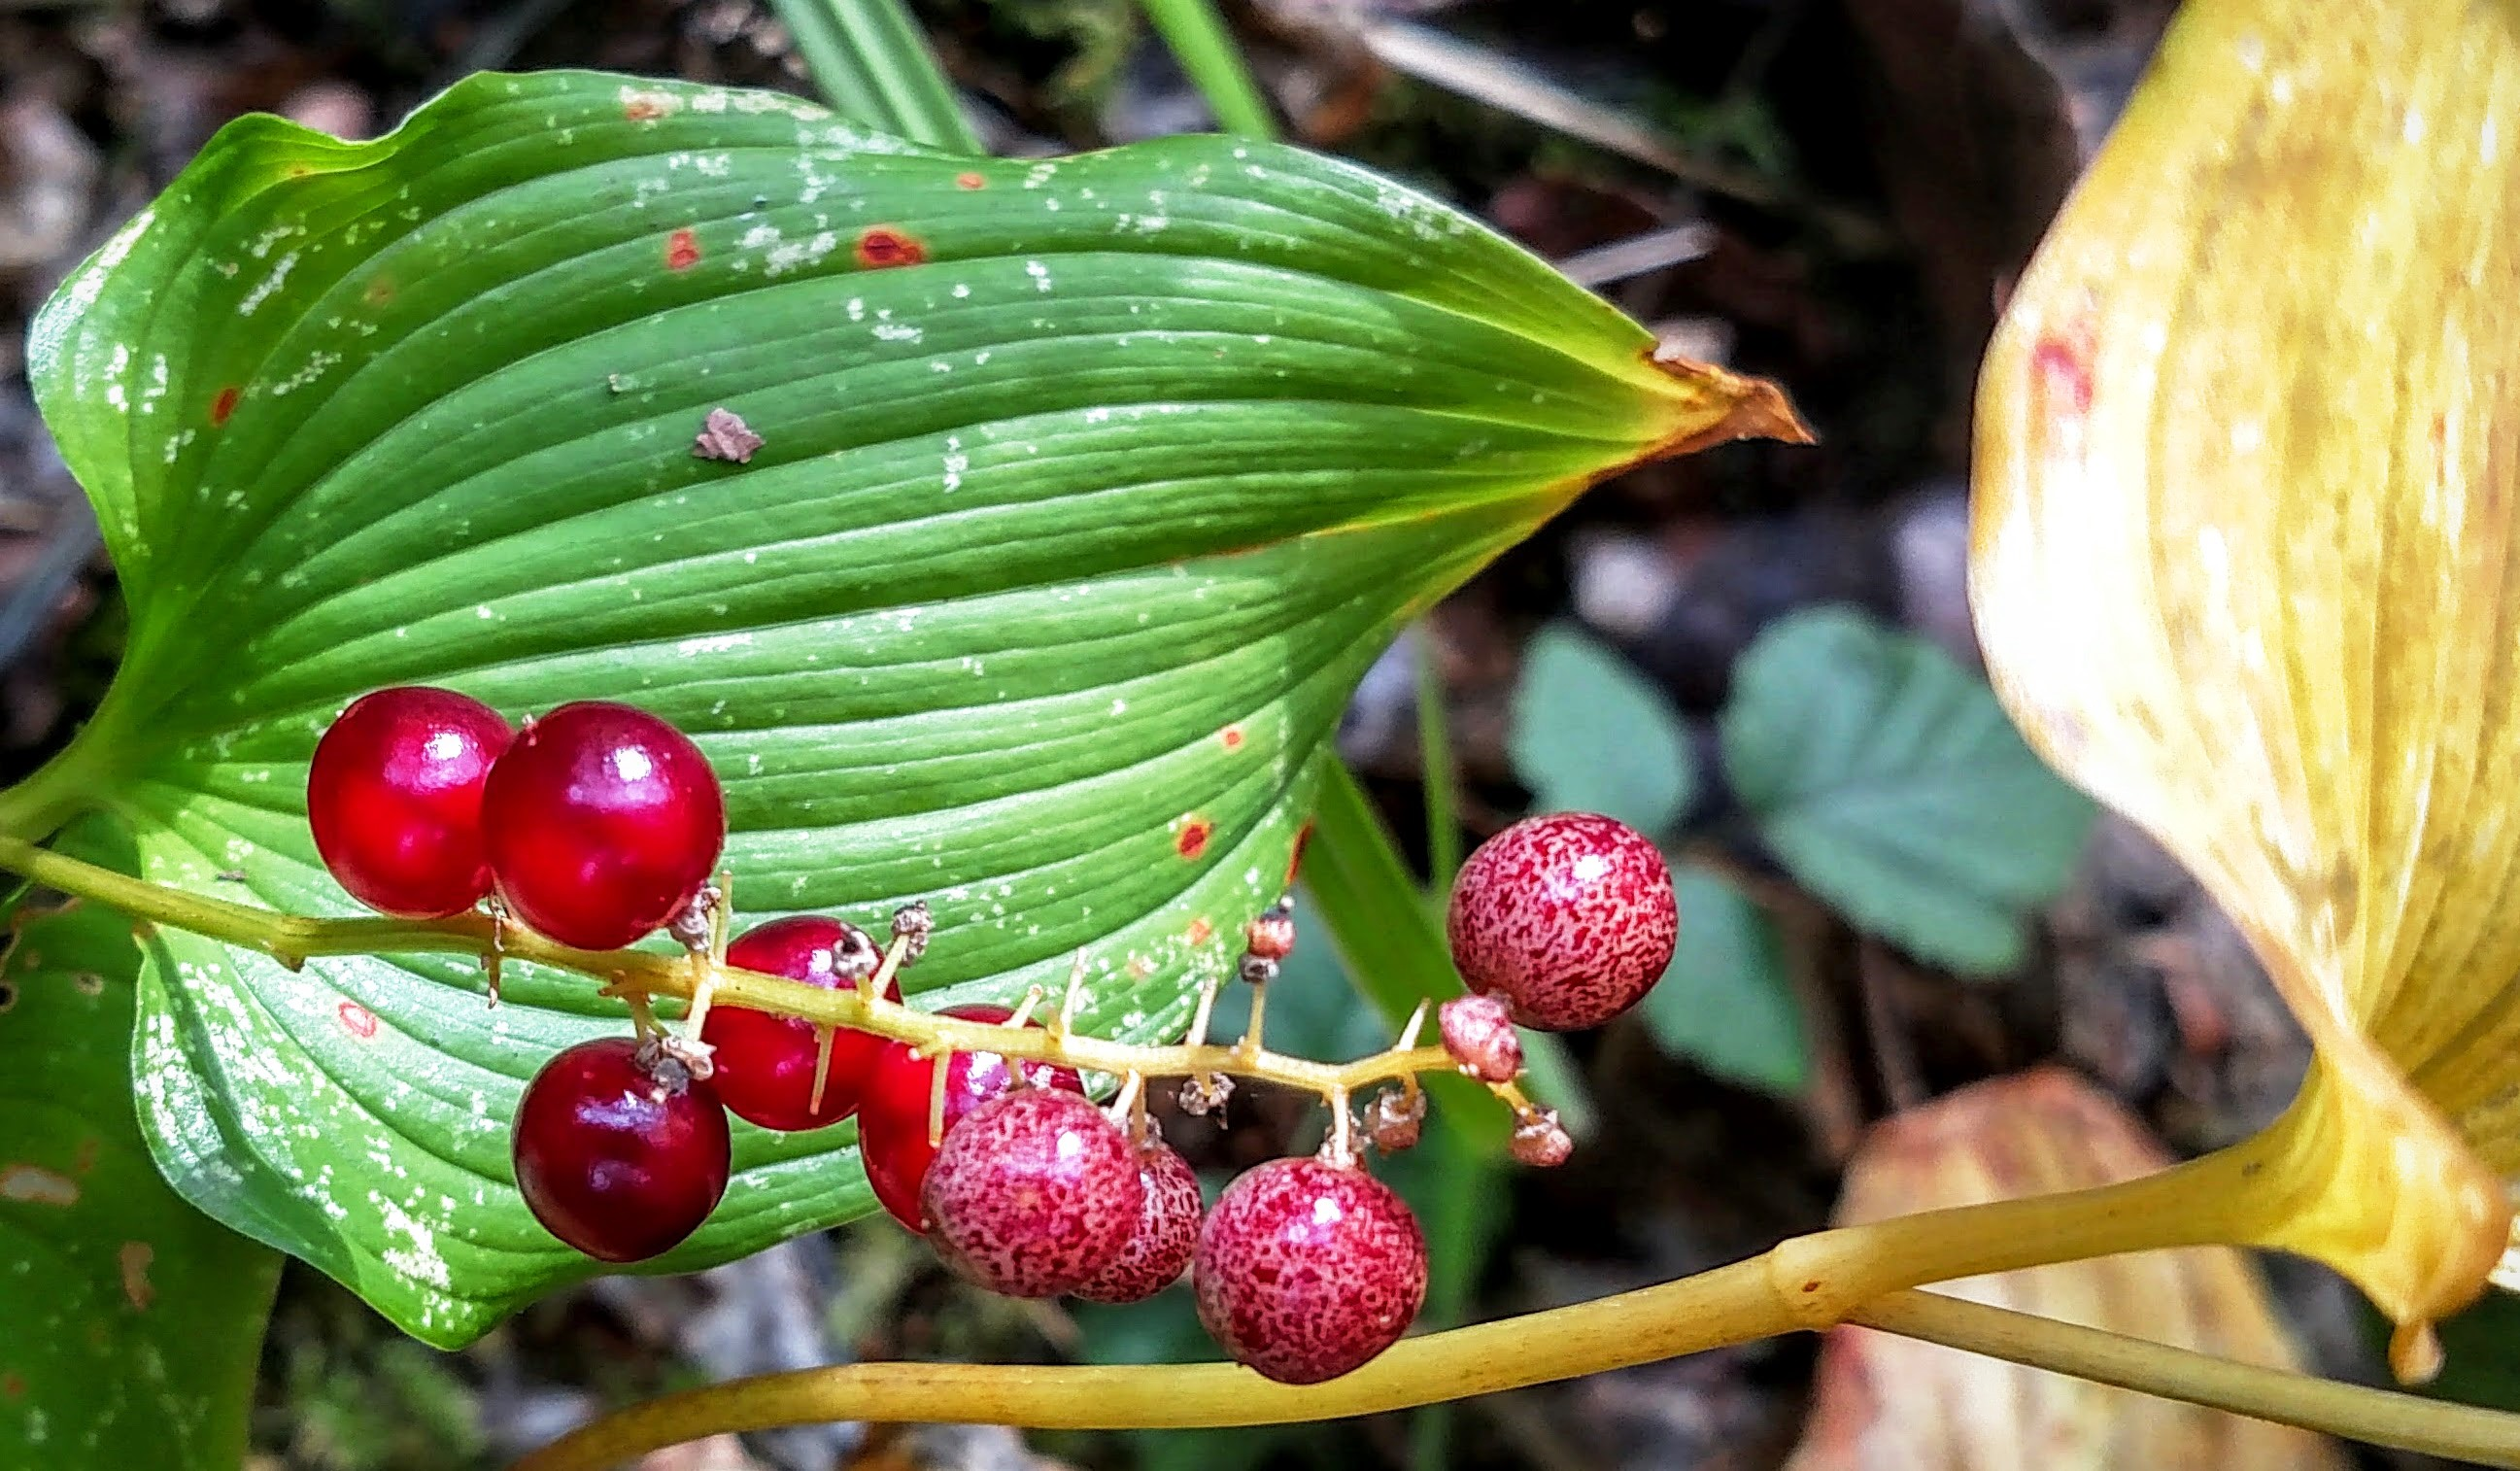 False Lilly of the Valley Berries